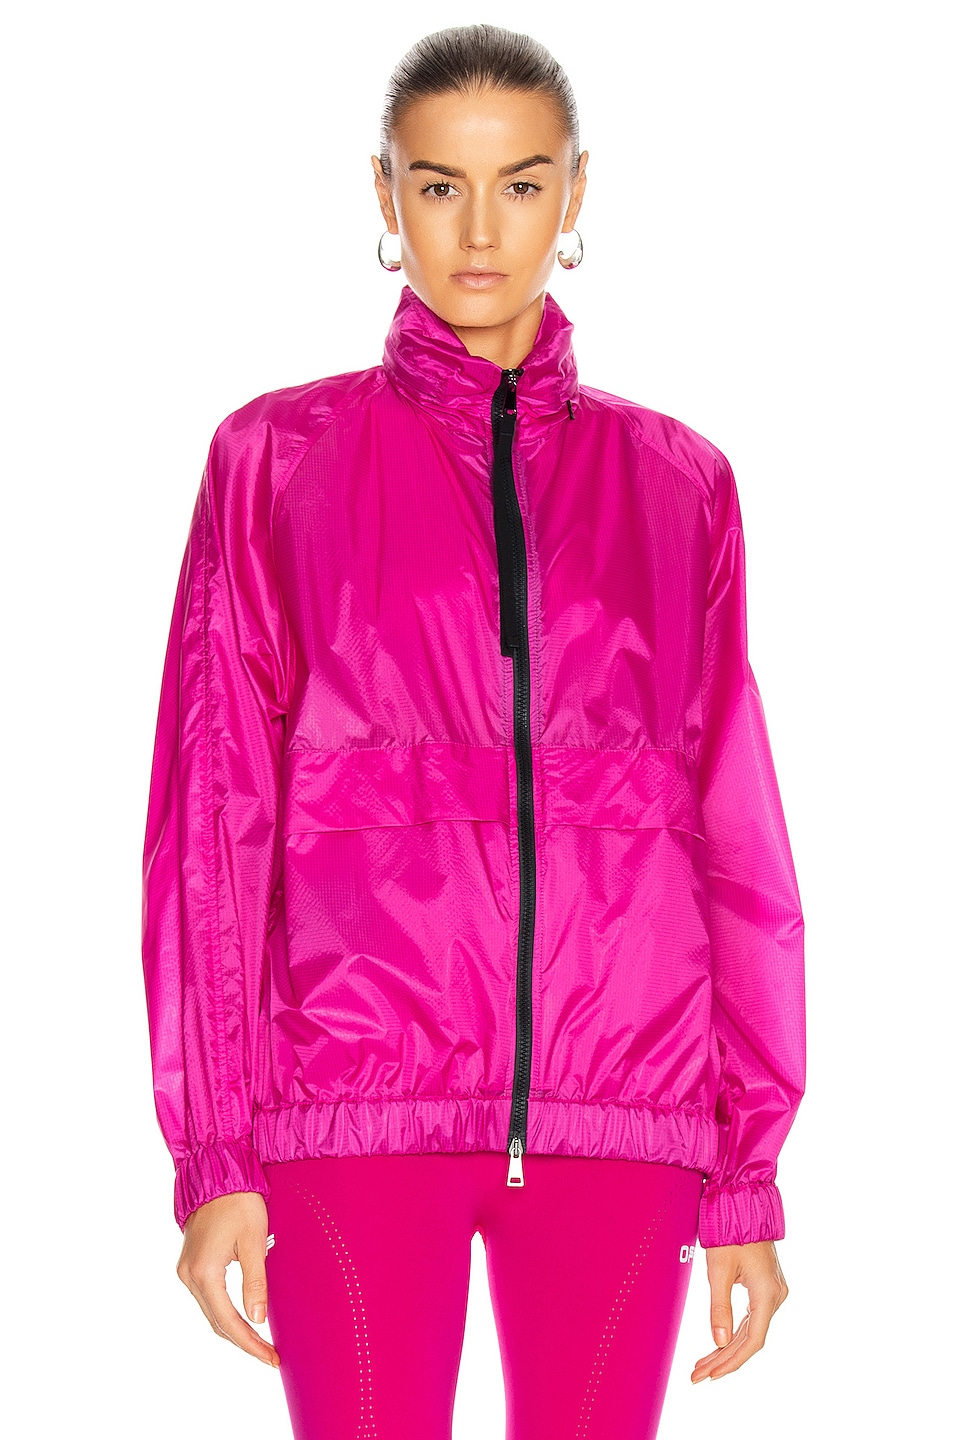 Image 2 of Moncler Groseille Giubbotto Jacket in Pink